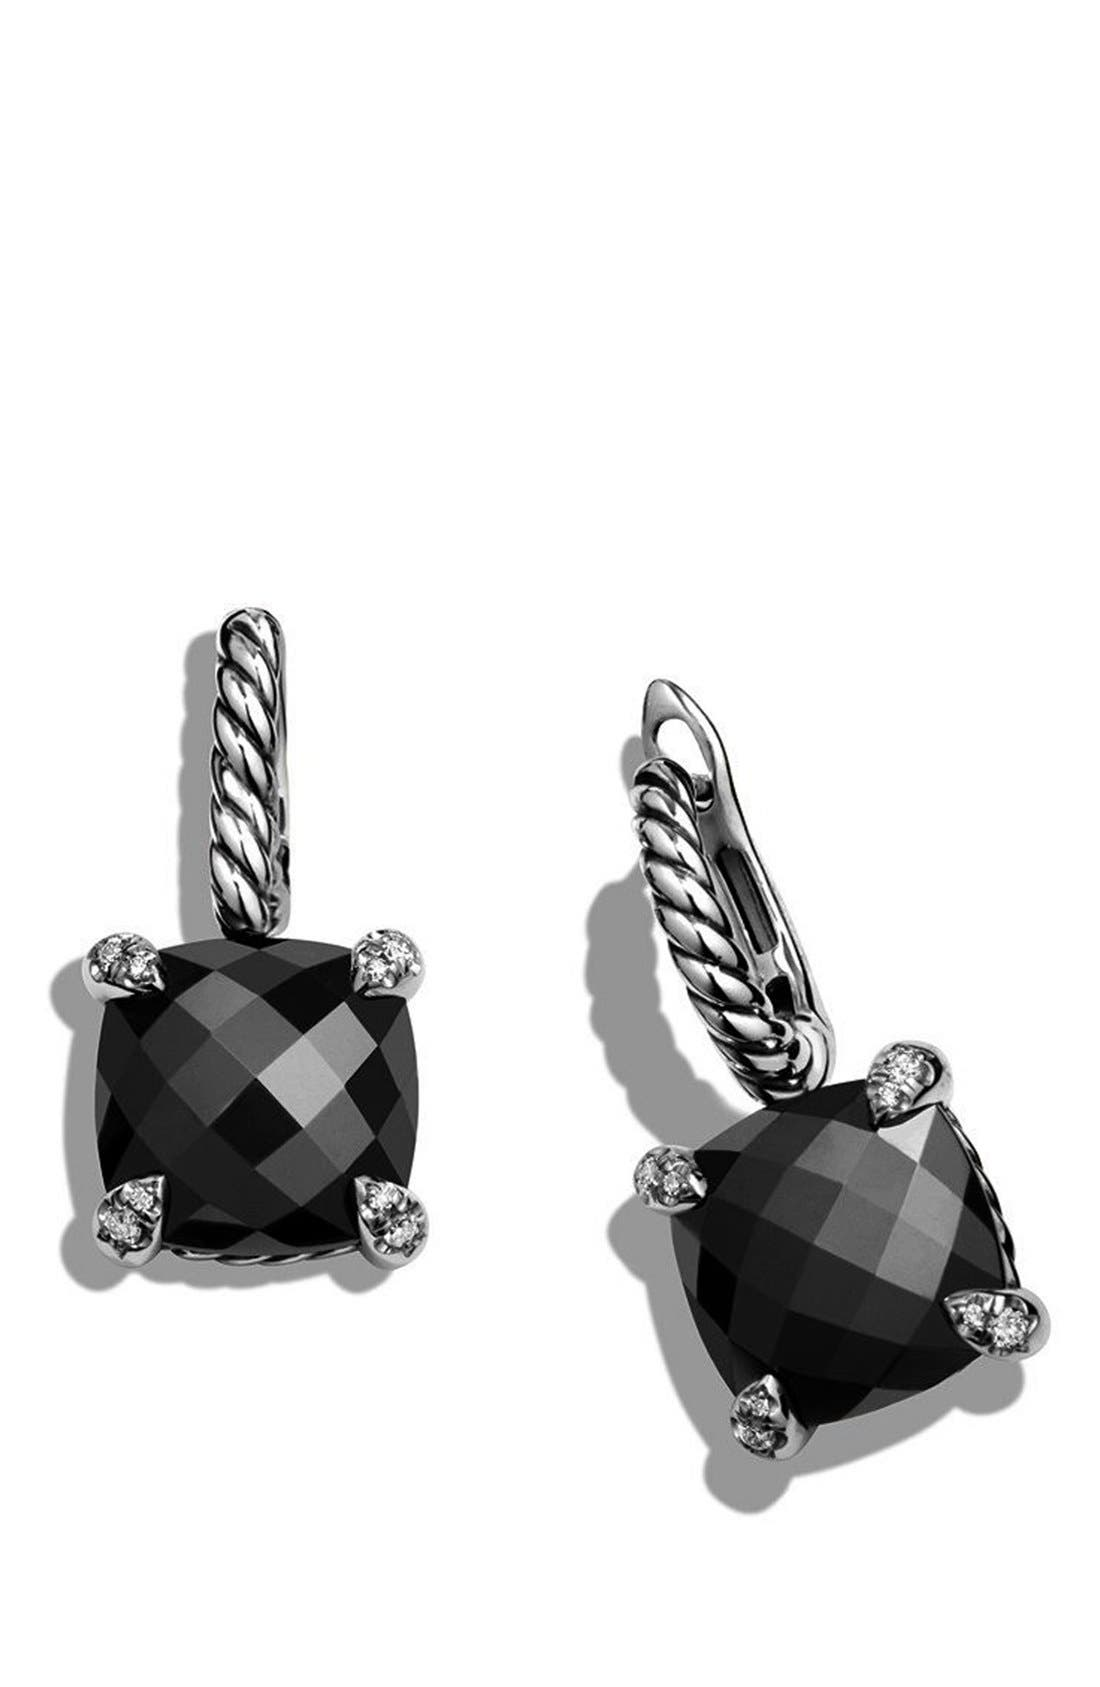 'Châtelaine' Drop Earrings with Semiprecious Stones and Diamonds,                             Alternate thumbnail 5, color,                             001